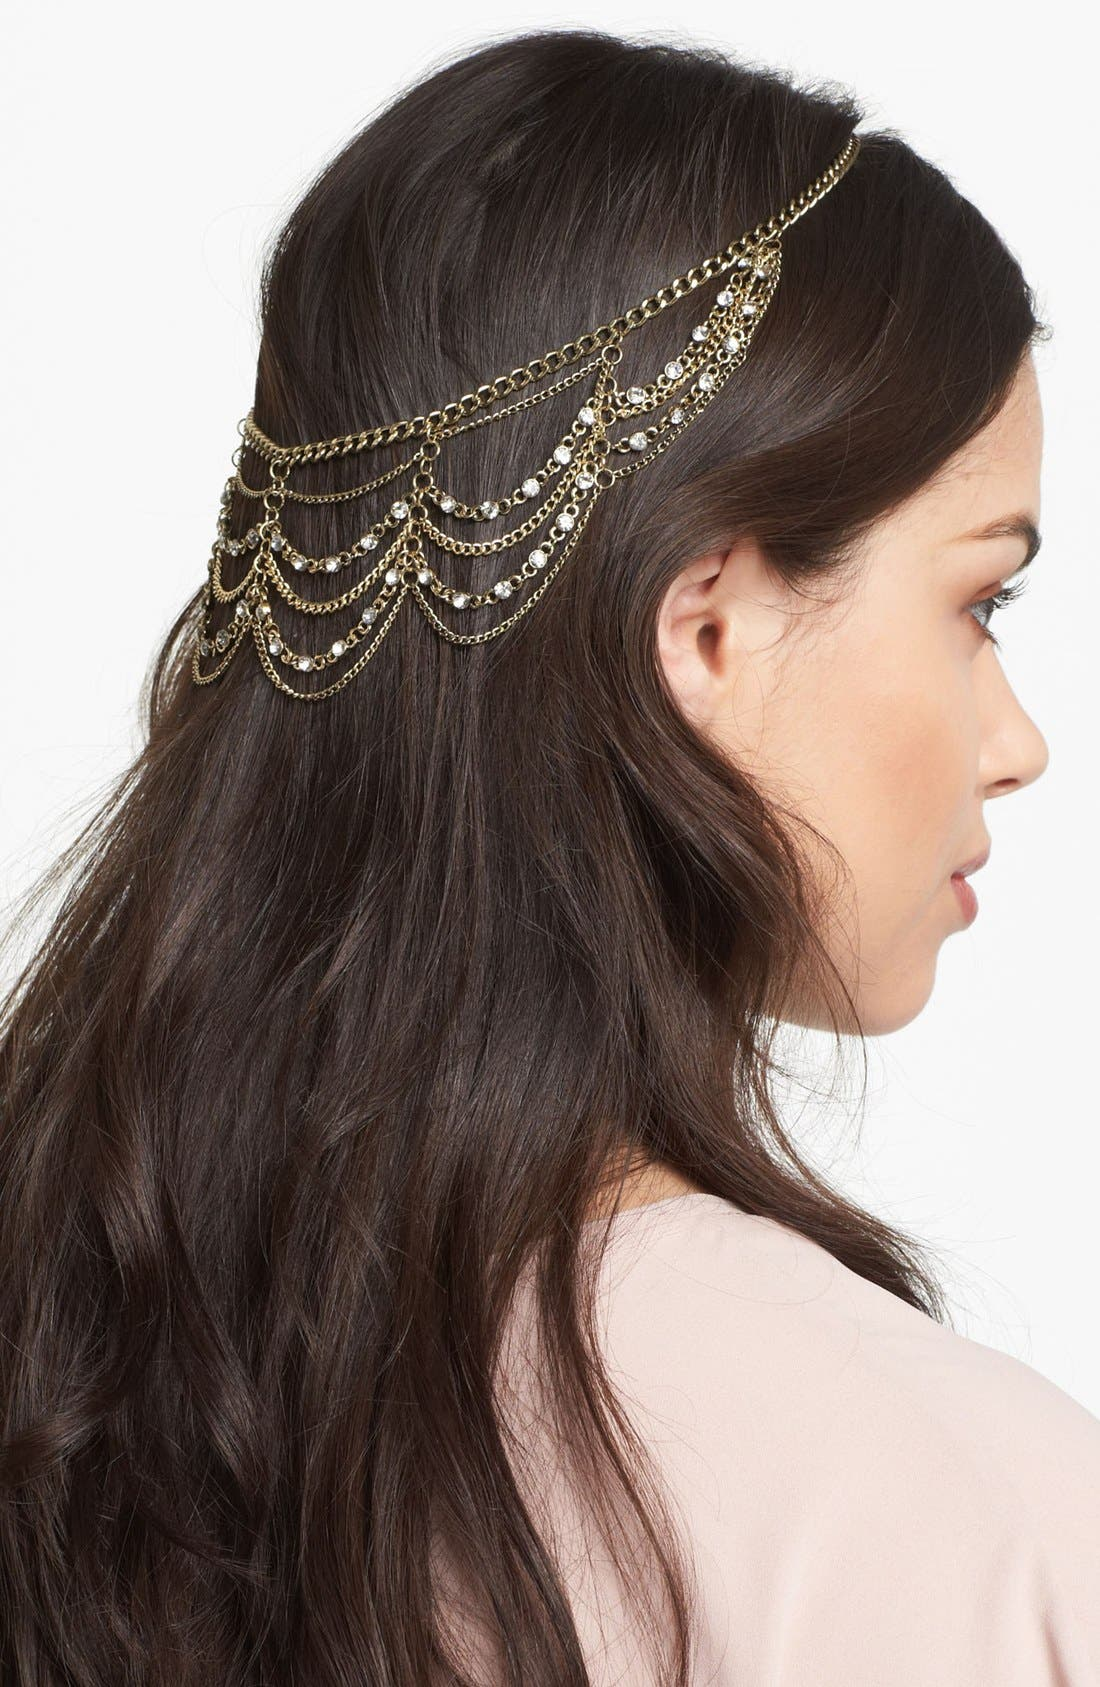 Main Image - Orion 'Empress' Chain Head Wrap